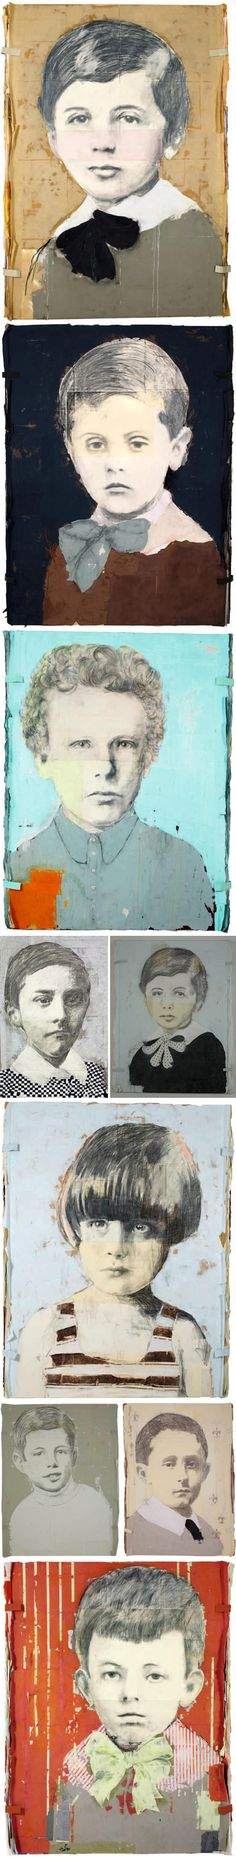 "Louis Boudreault's large scale mixed media series titled ""Destiny"" are the childhood portraits of such greats as Picasso, Warhol, Van Gogh, Elvis etc!"